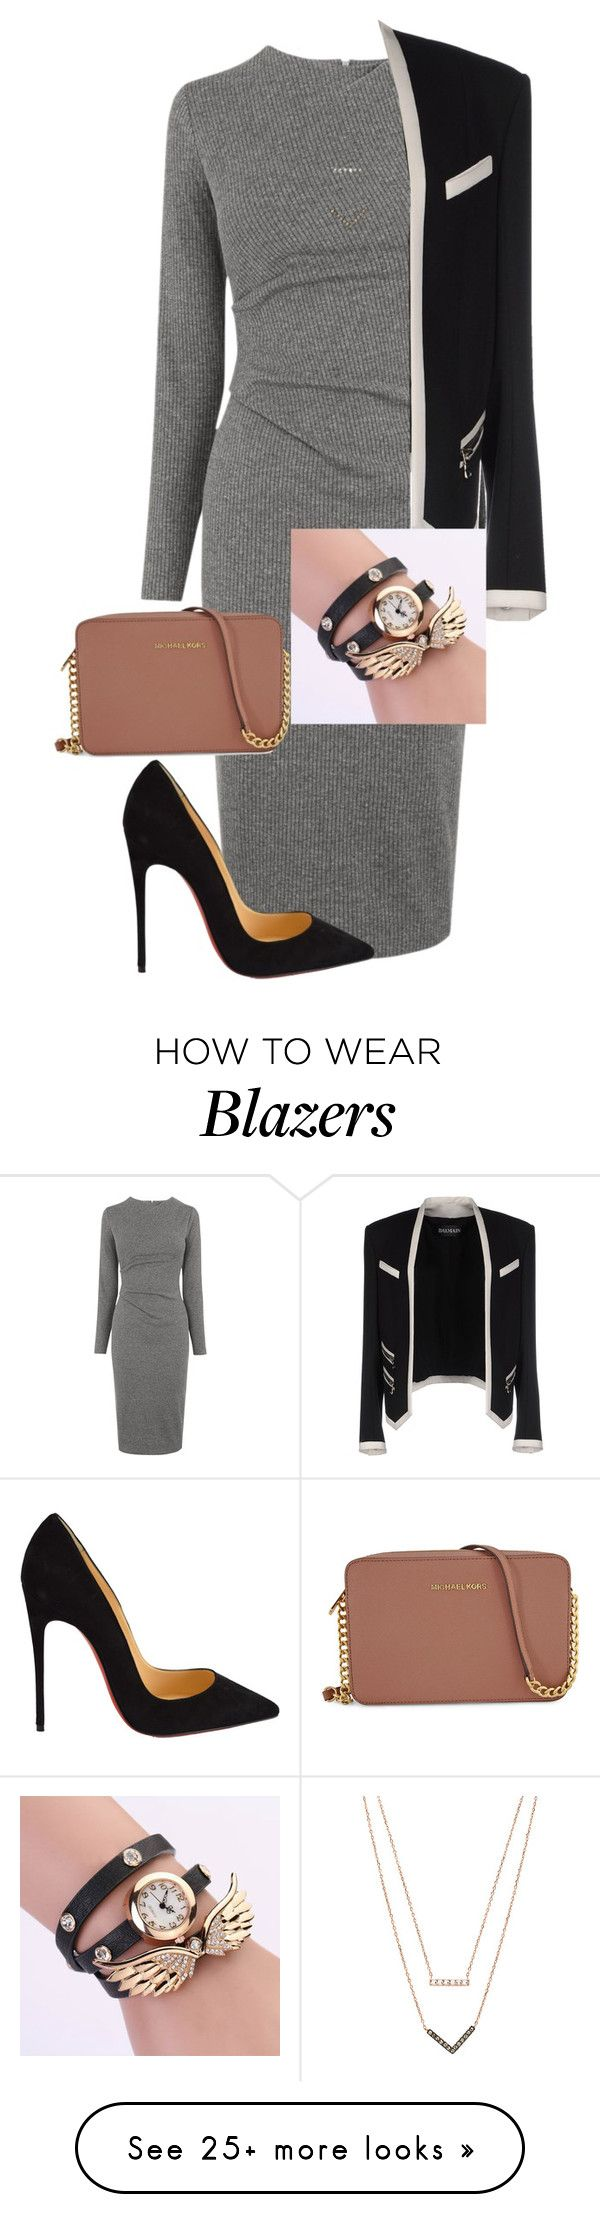 """""""Untitled #374"""" by samson-90 on Polyvore featuring Whistles, Christian Louboutin, Balmain, Michael Kors, women's clothing, women's fashion, women, female, woman and misses"""